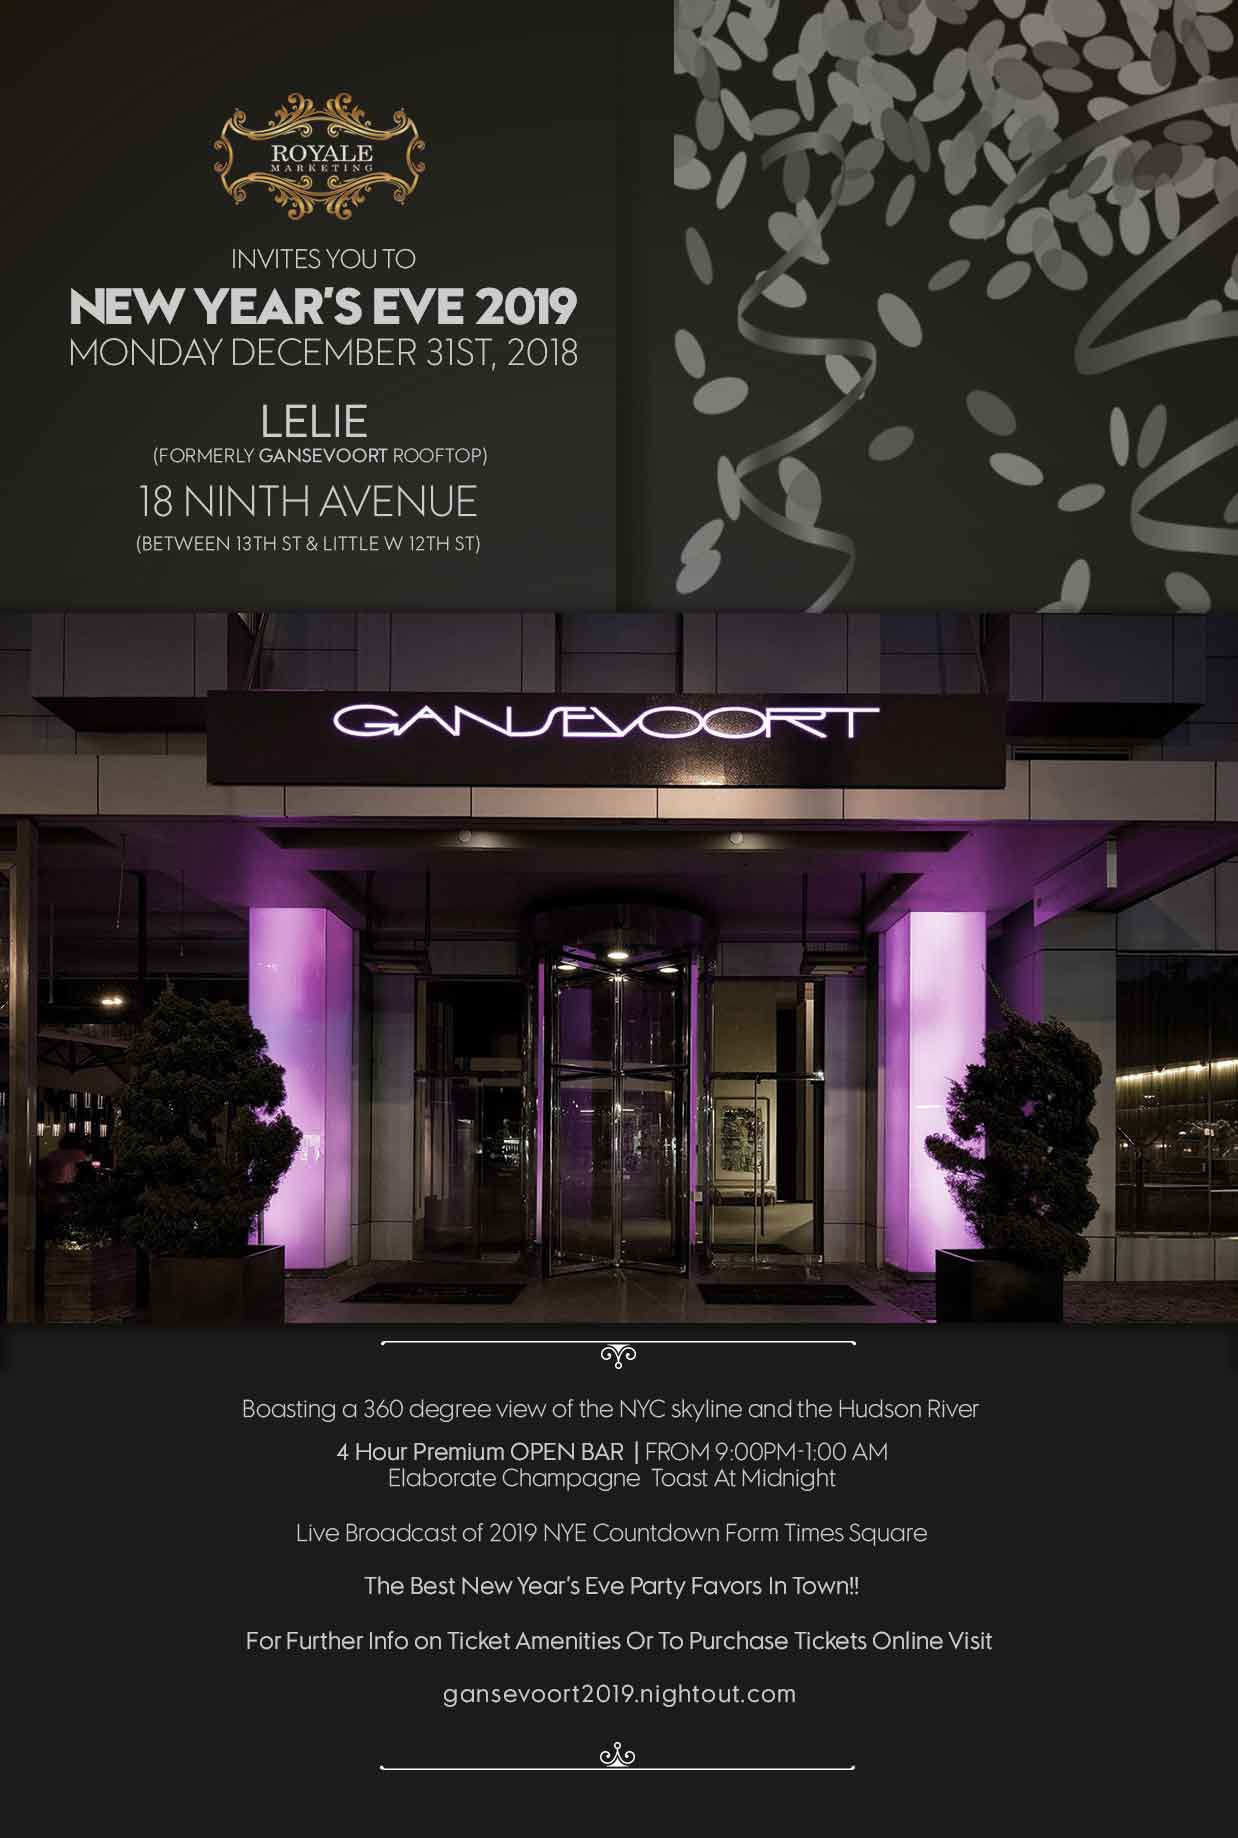 New Year's Eve @ Gansevoort Flyer